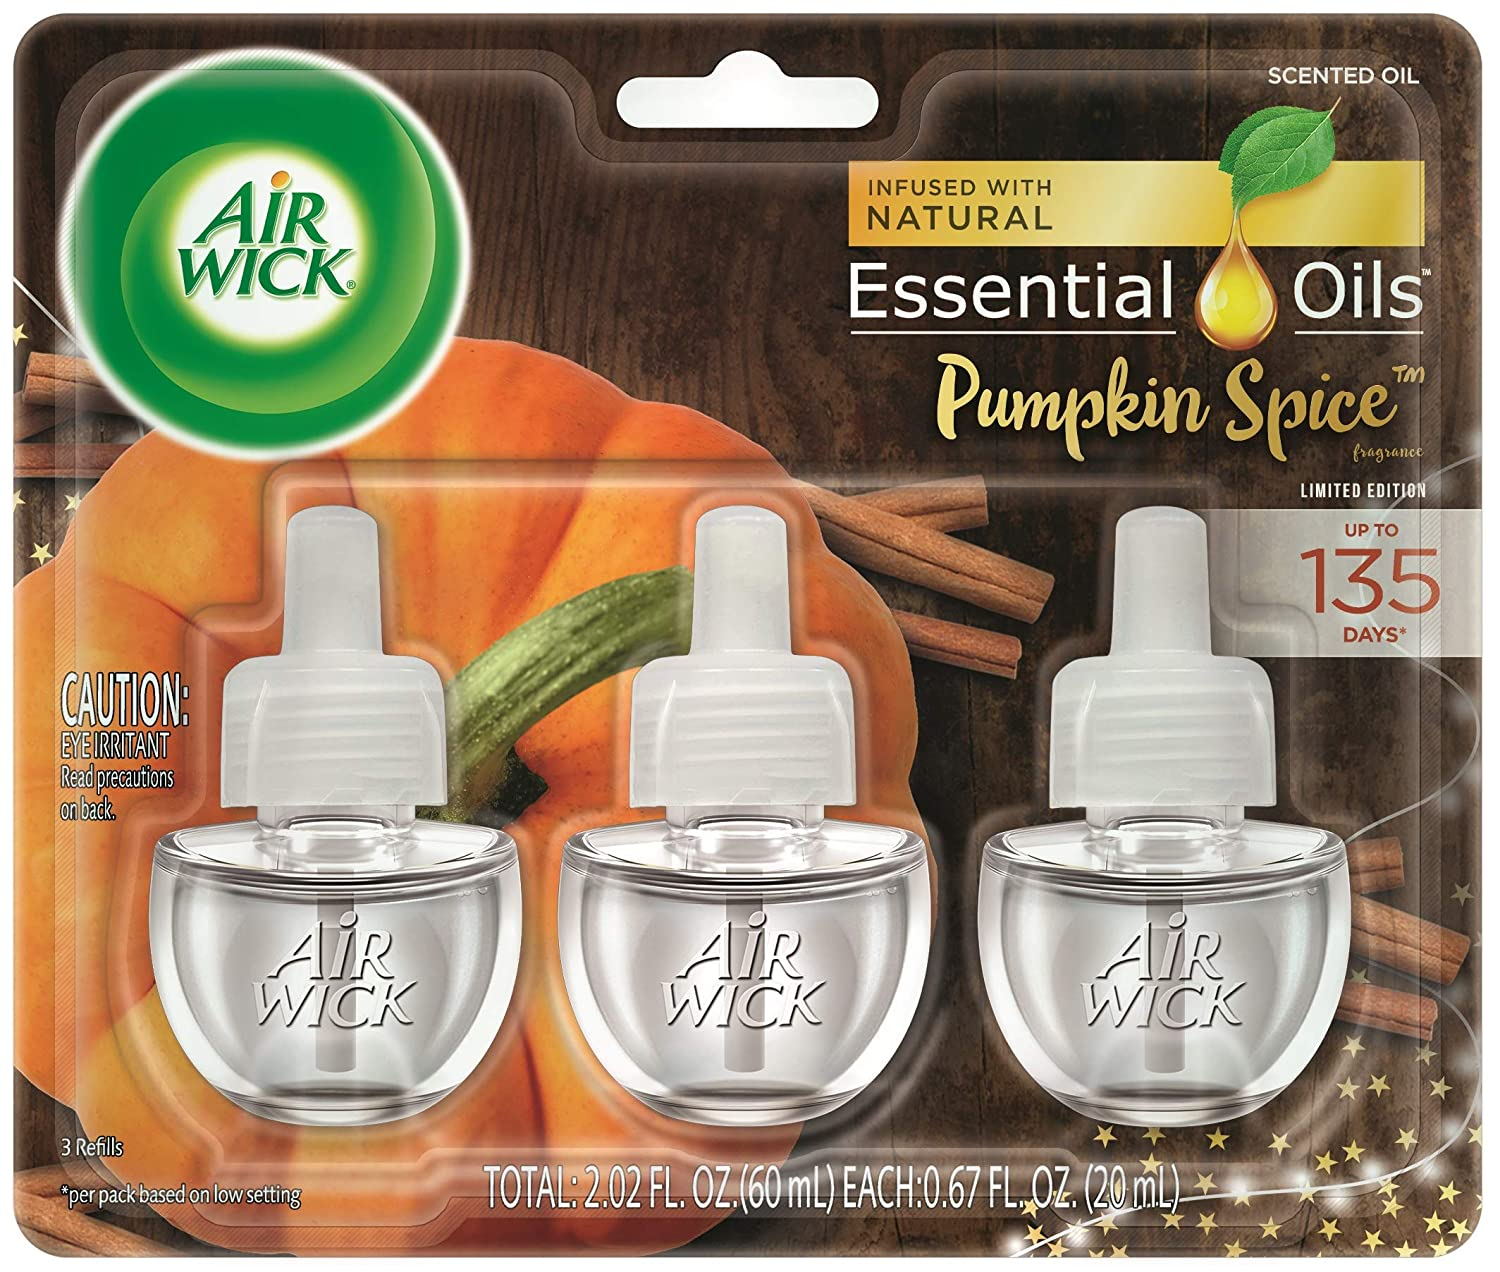 Air Wick Plug in Scented Oil 3 Refills, Pumpkin Spice, Holiday scent, Holiday spray, (3x0.67oz), Essential Oils, Air Freshener, Packaging May Vary